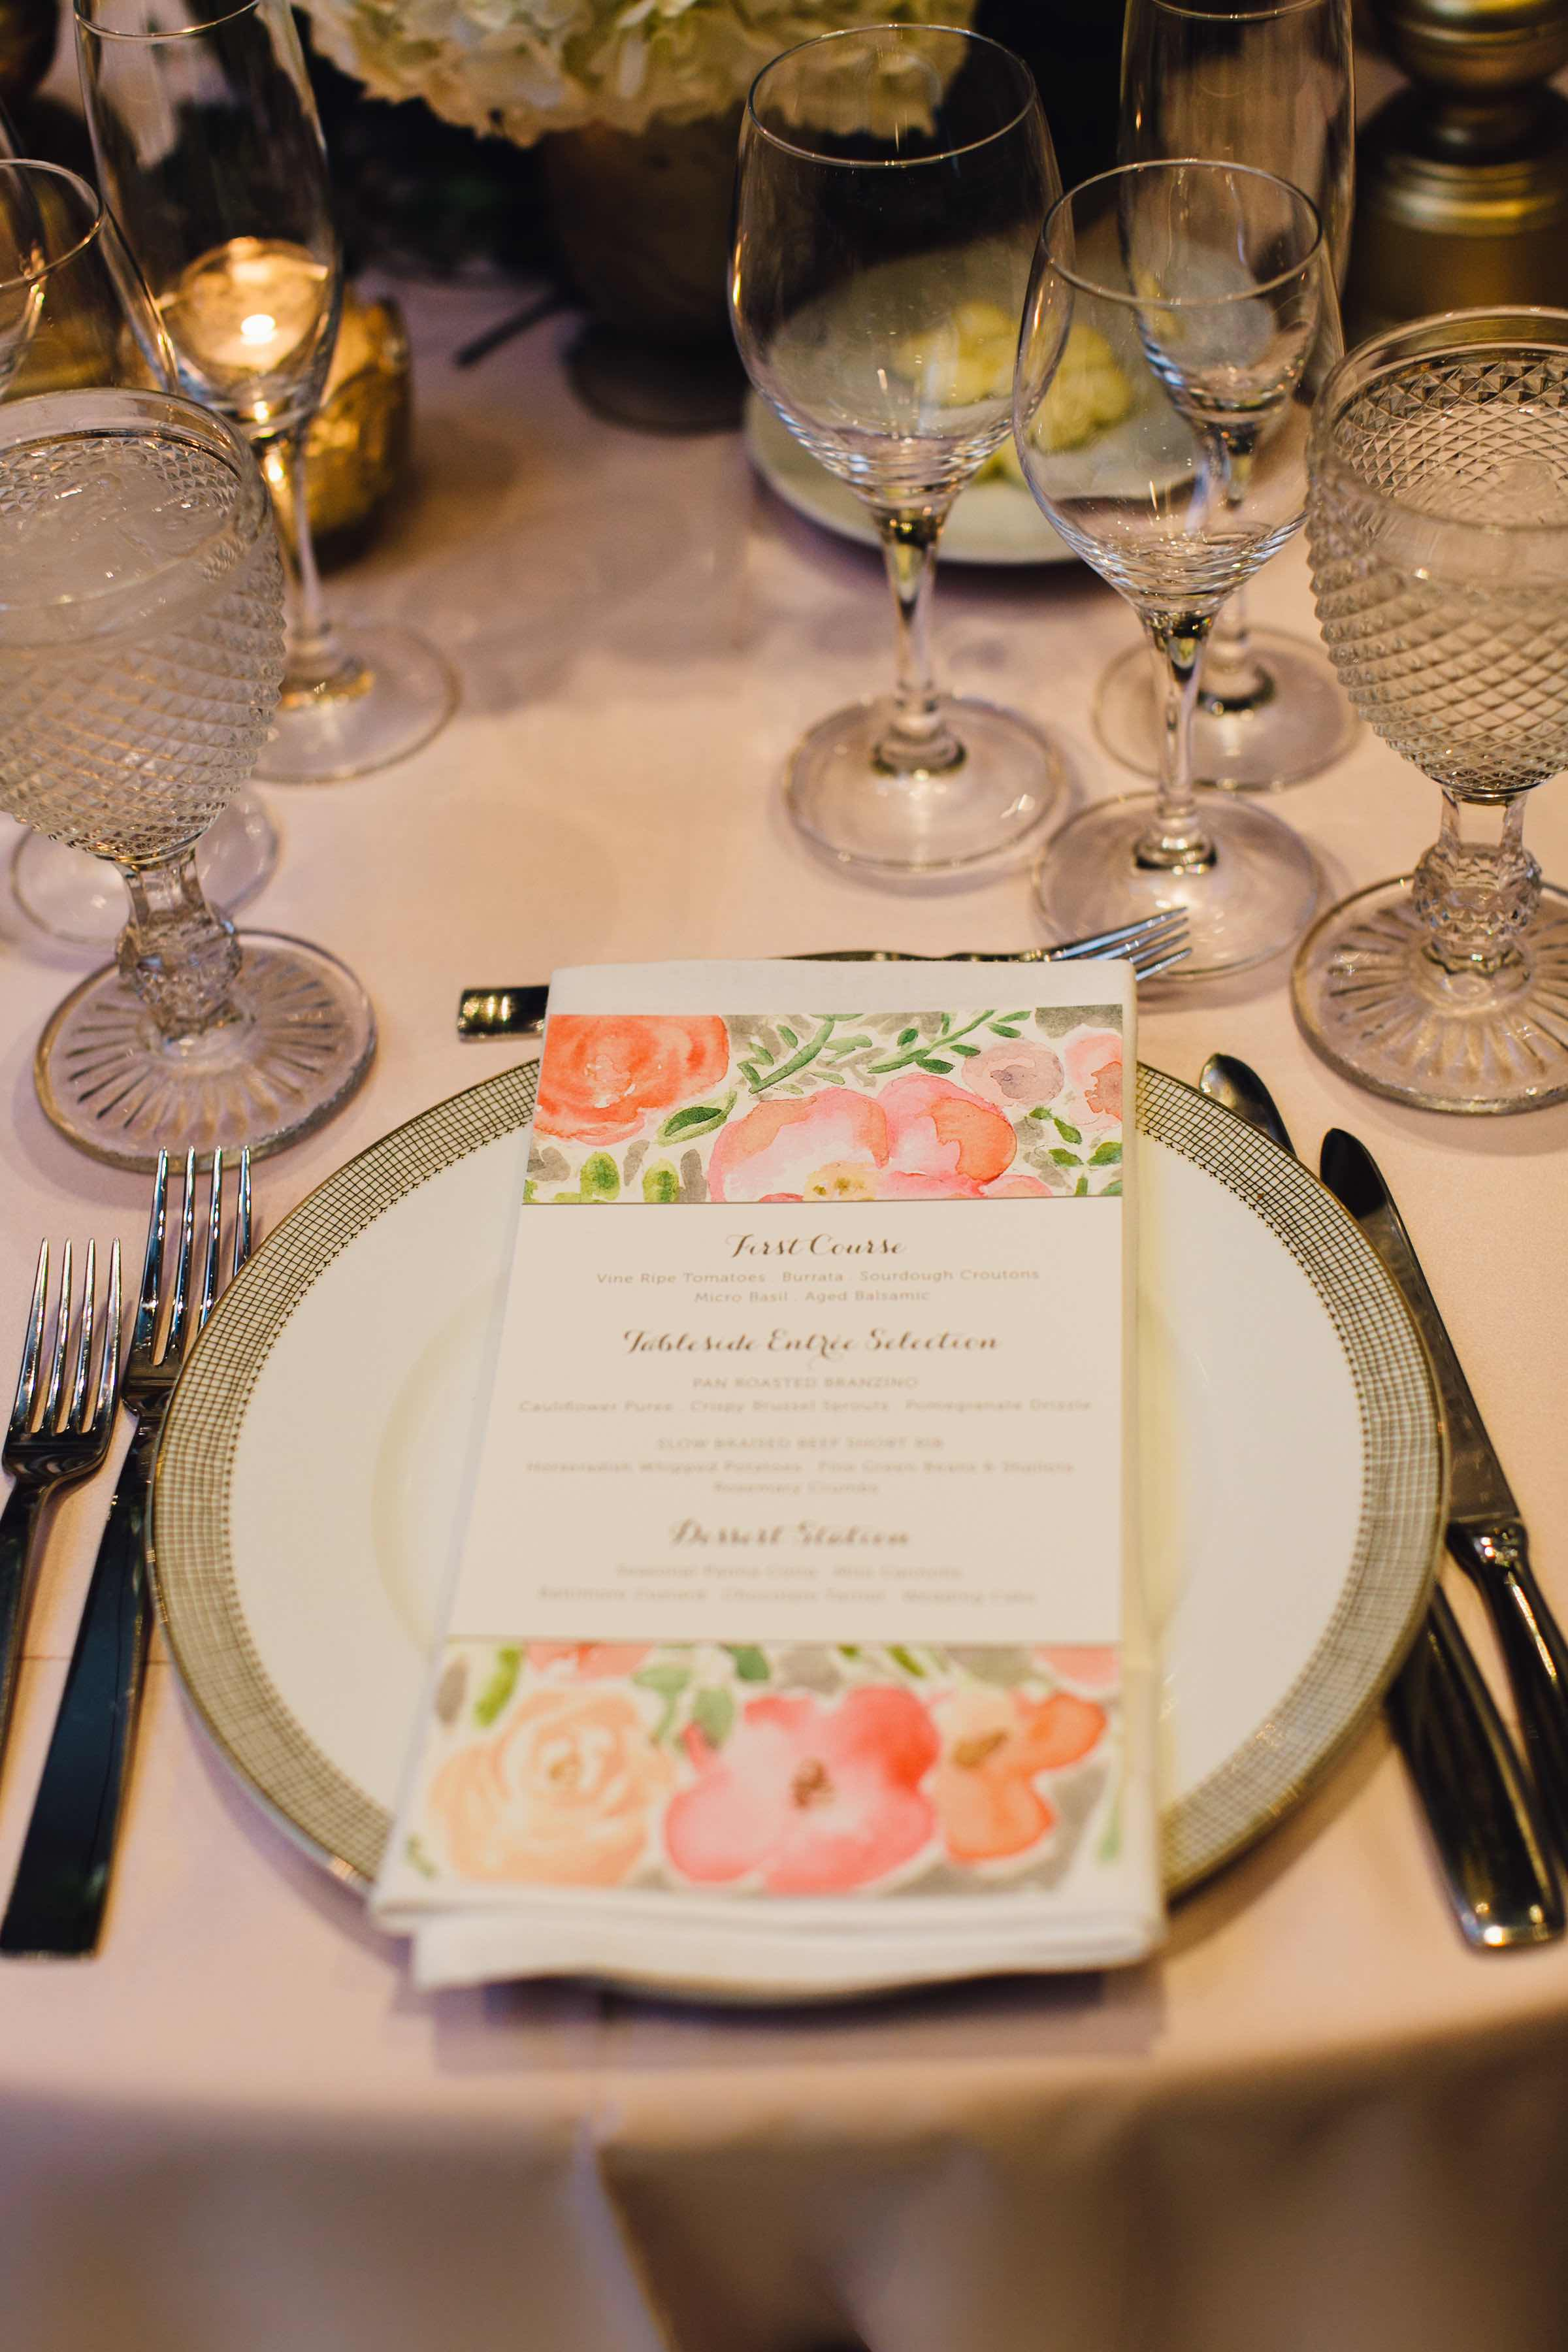 Four Seasons Baltimore Wedding: Dinner Place Setting